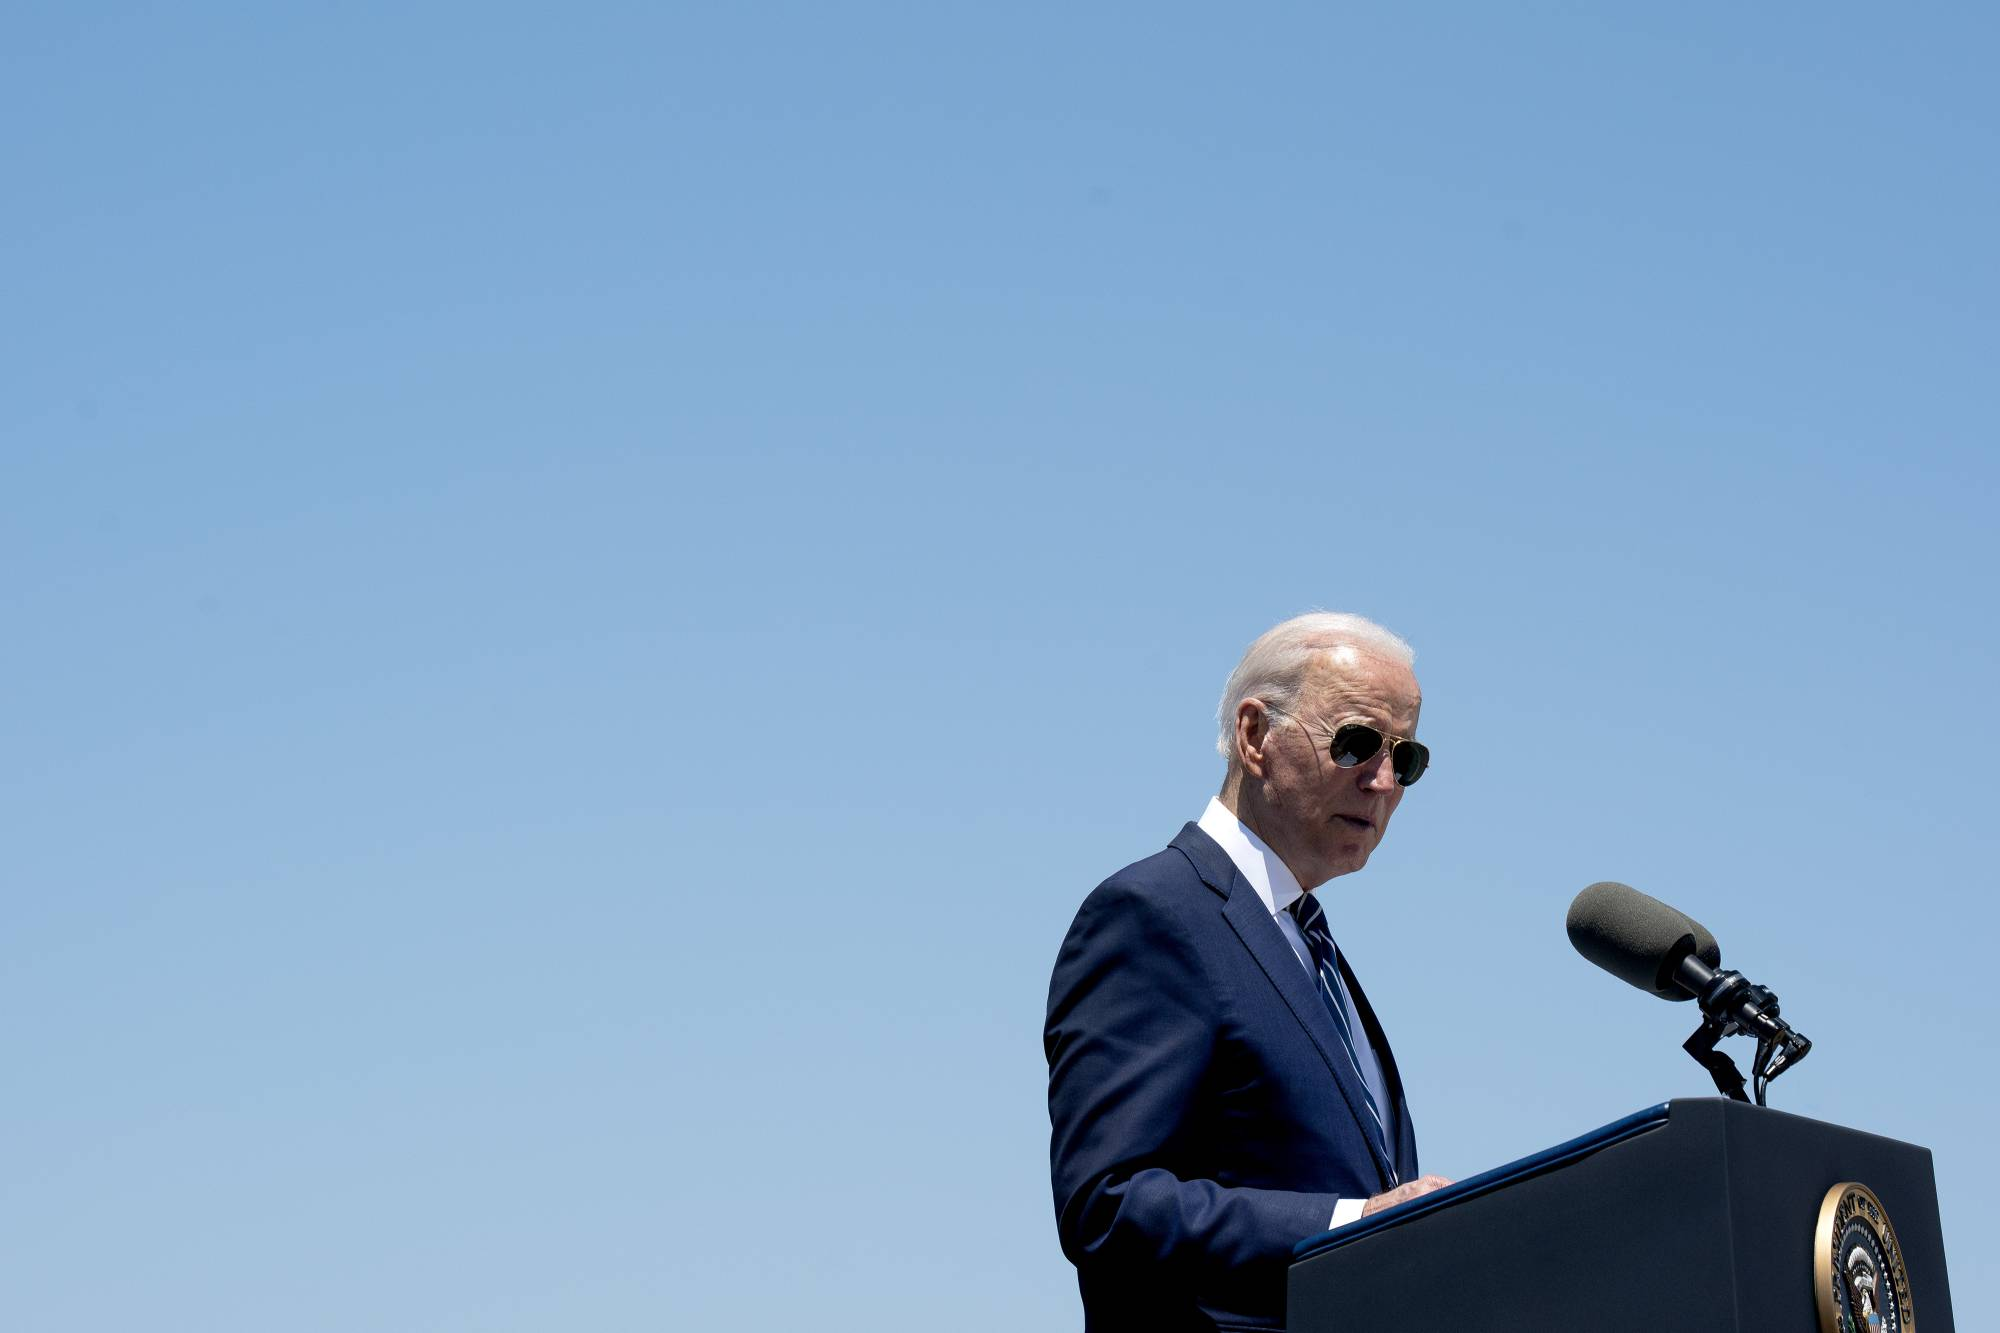 U.S. President Joe Biden delivers remarks on the American Jobs Plan in Lake Charles, Louisiana, on May 6.  | STEFANI REYNOLDS/THE NEW YORK TIMES